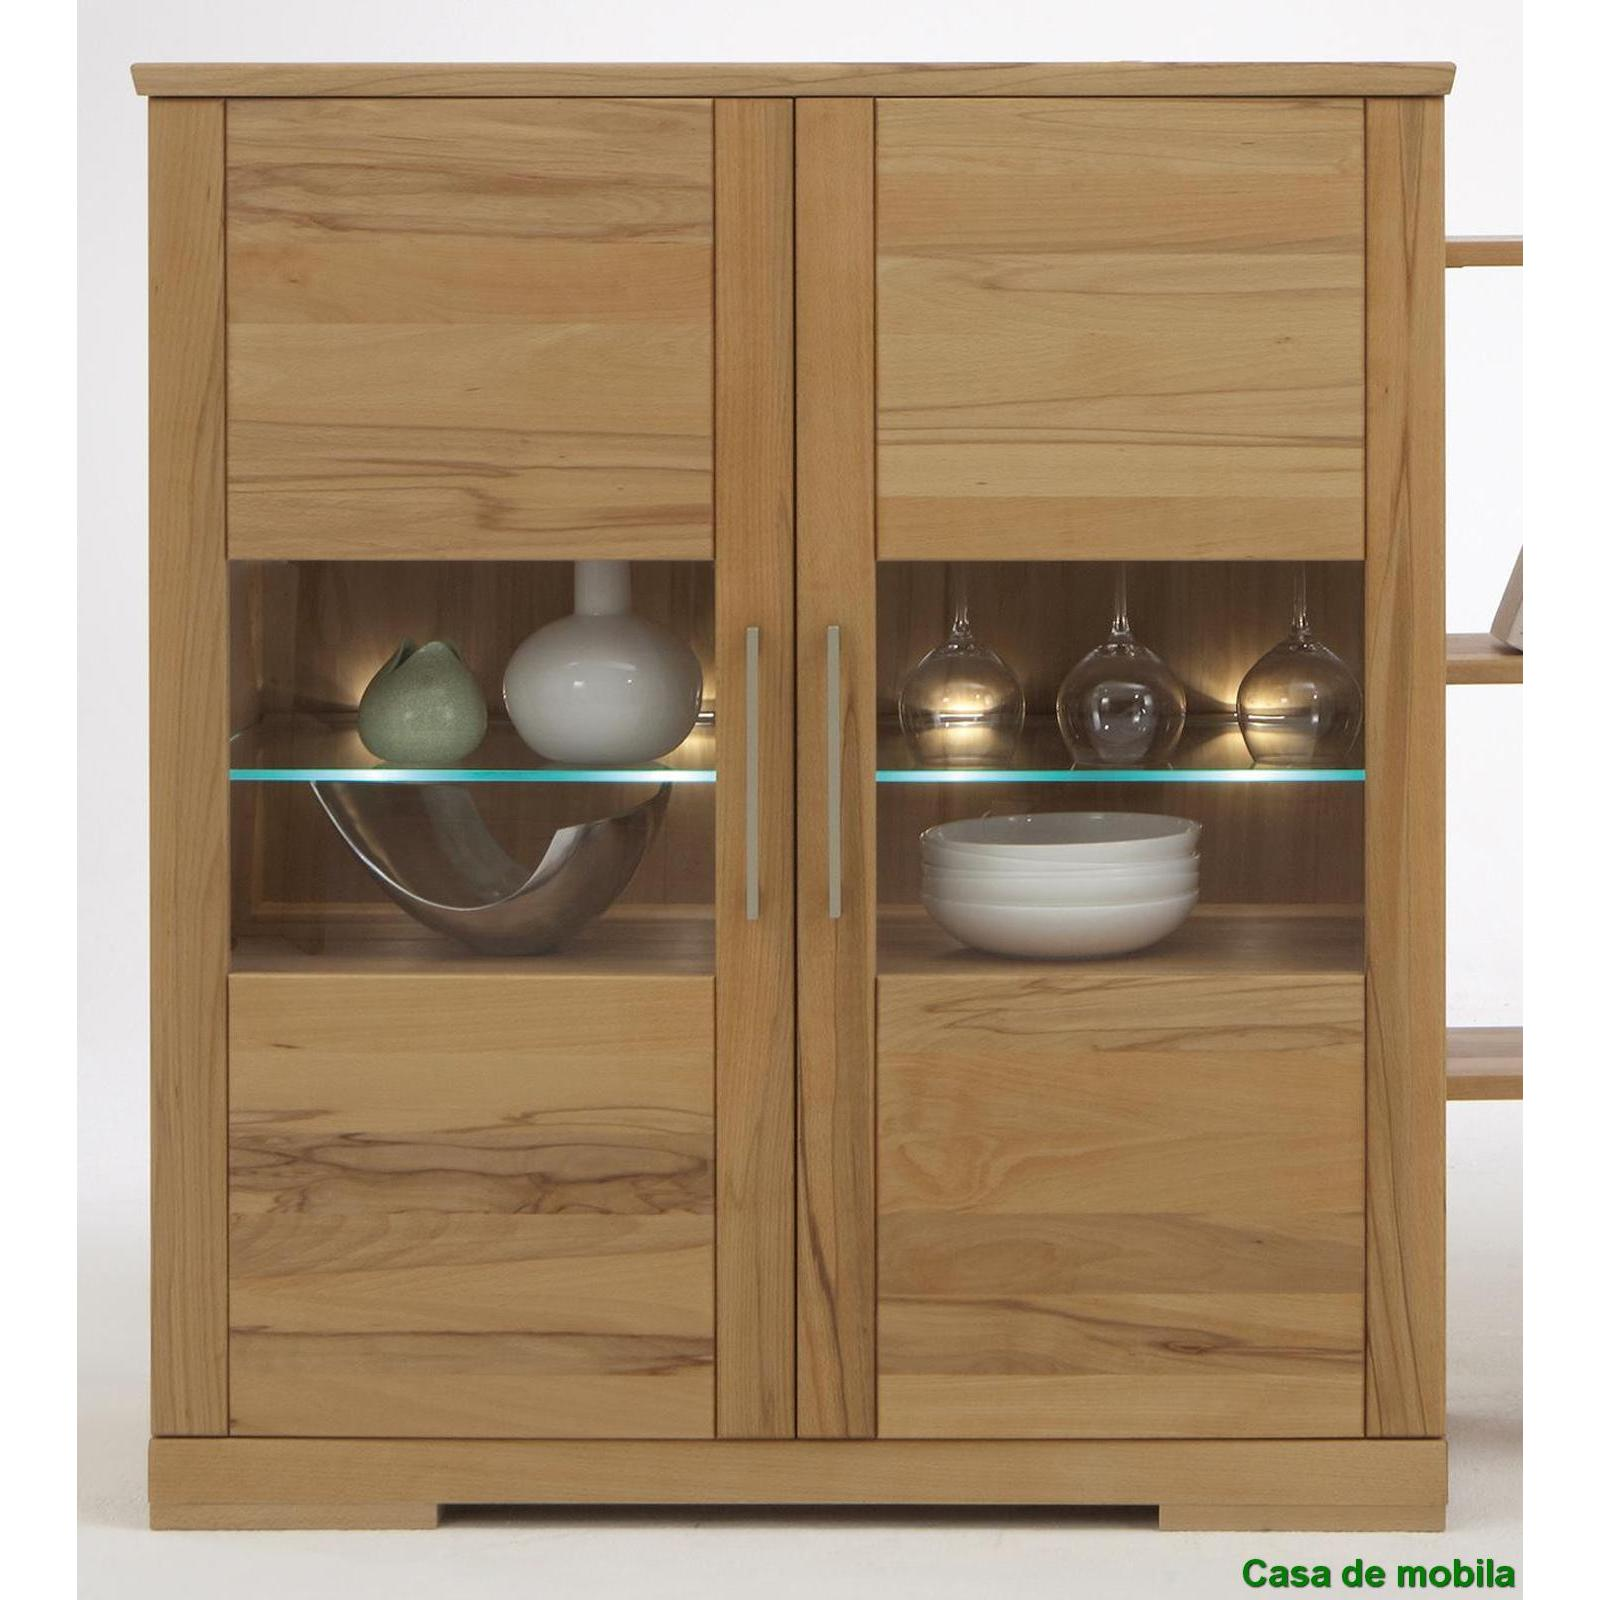 massivholz vitrine awesome showcase schrank vitrine arztschrank massivholz metall glas with. Black Bedroom Furniture Sets. Home Design Ideas